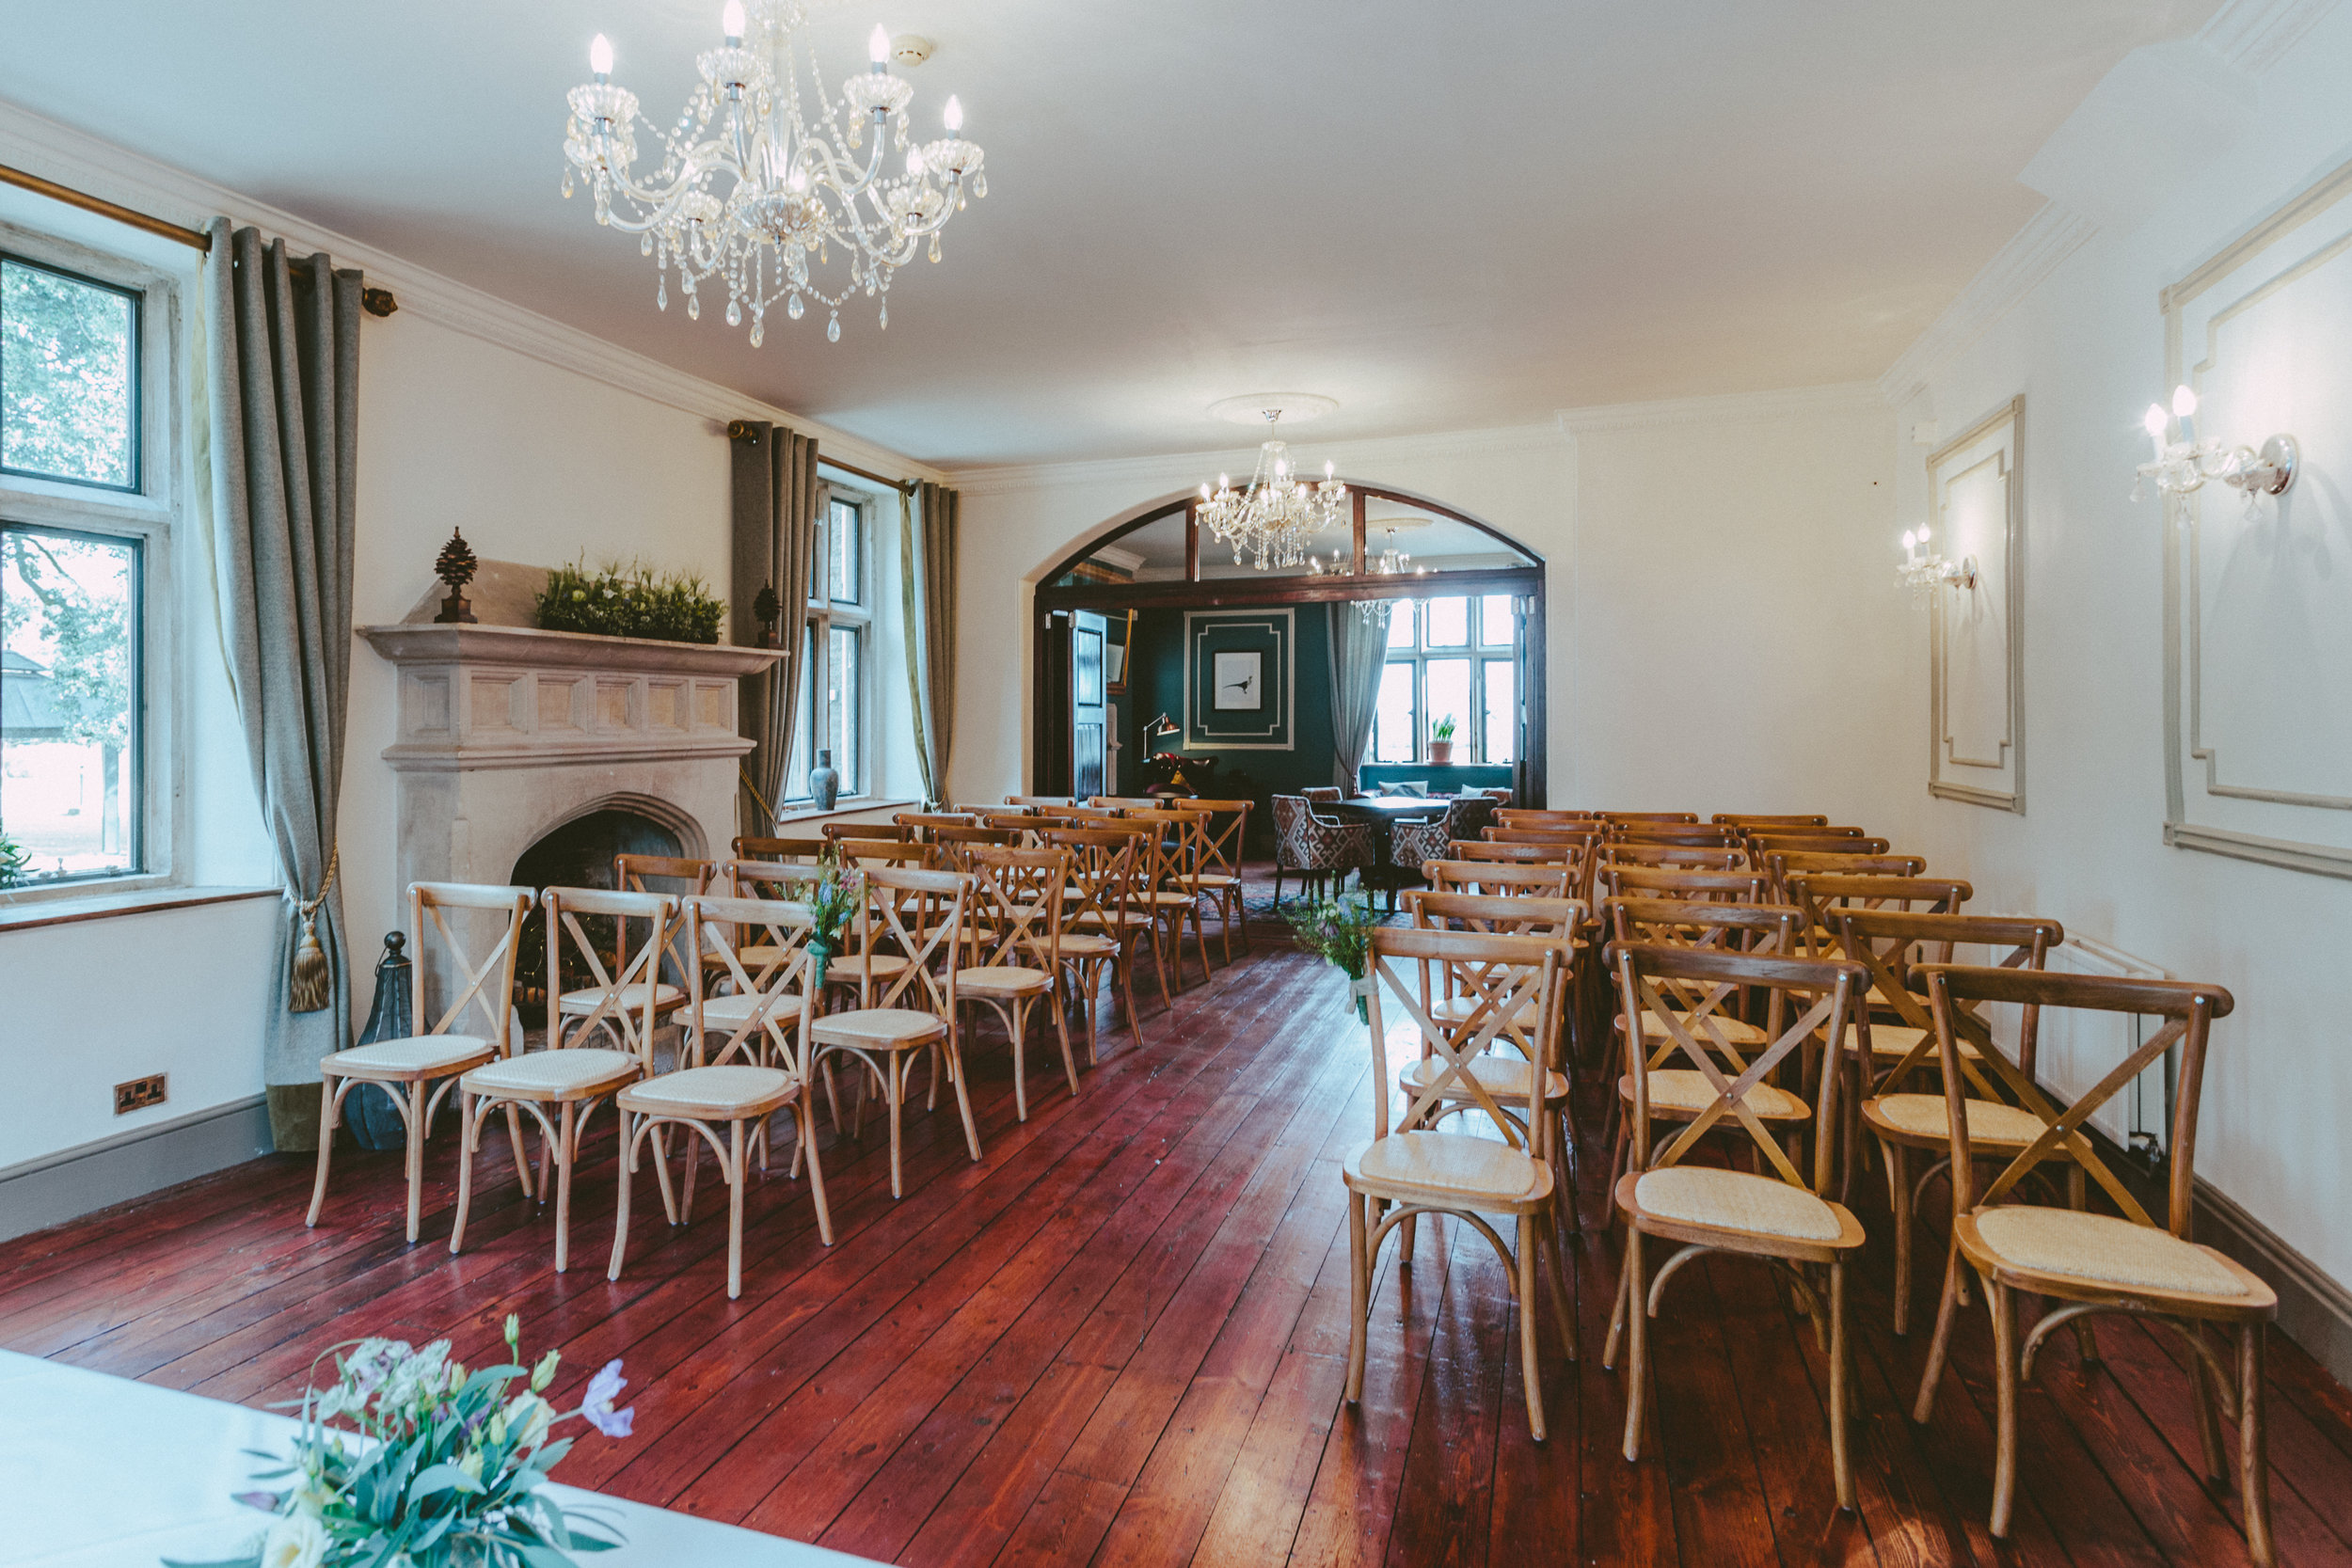 The ceremony - Get married in our Woodlands Room for up to 90 guests